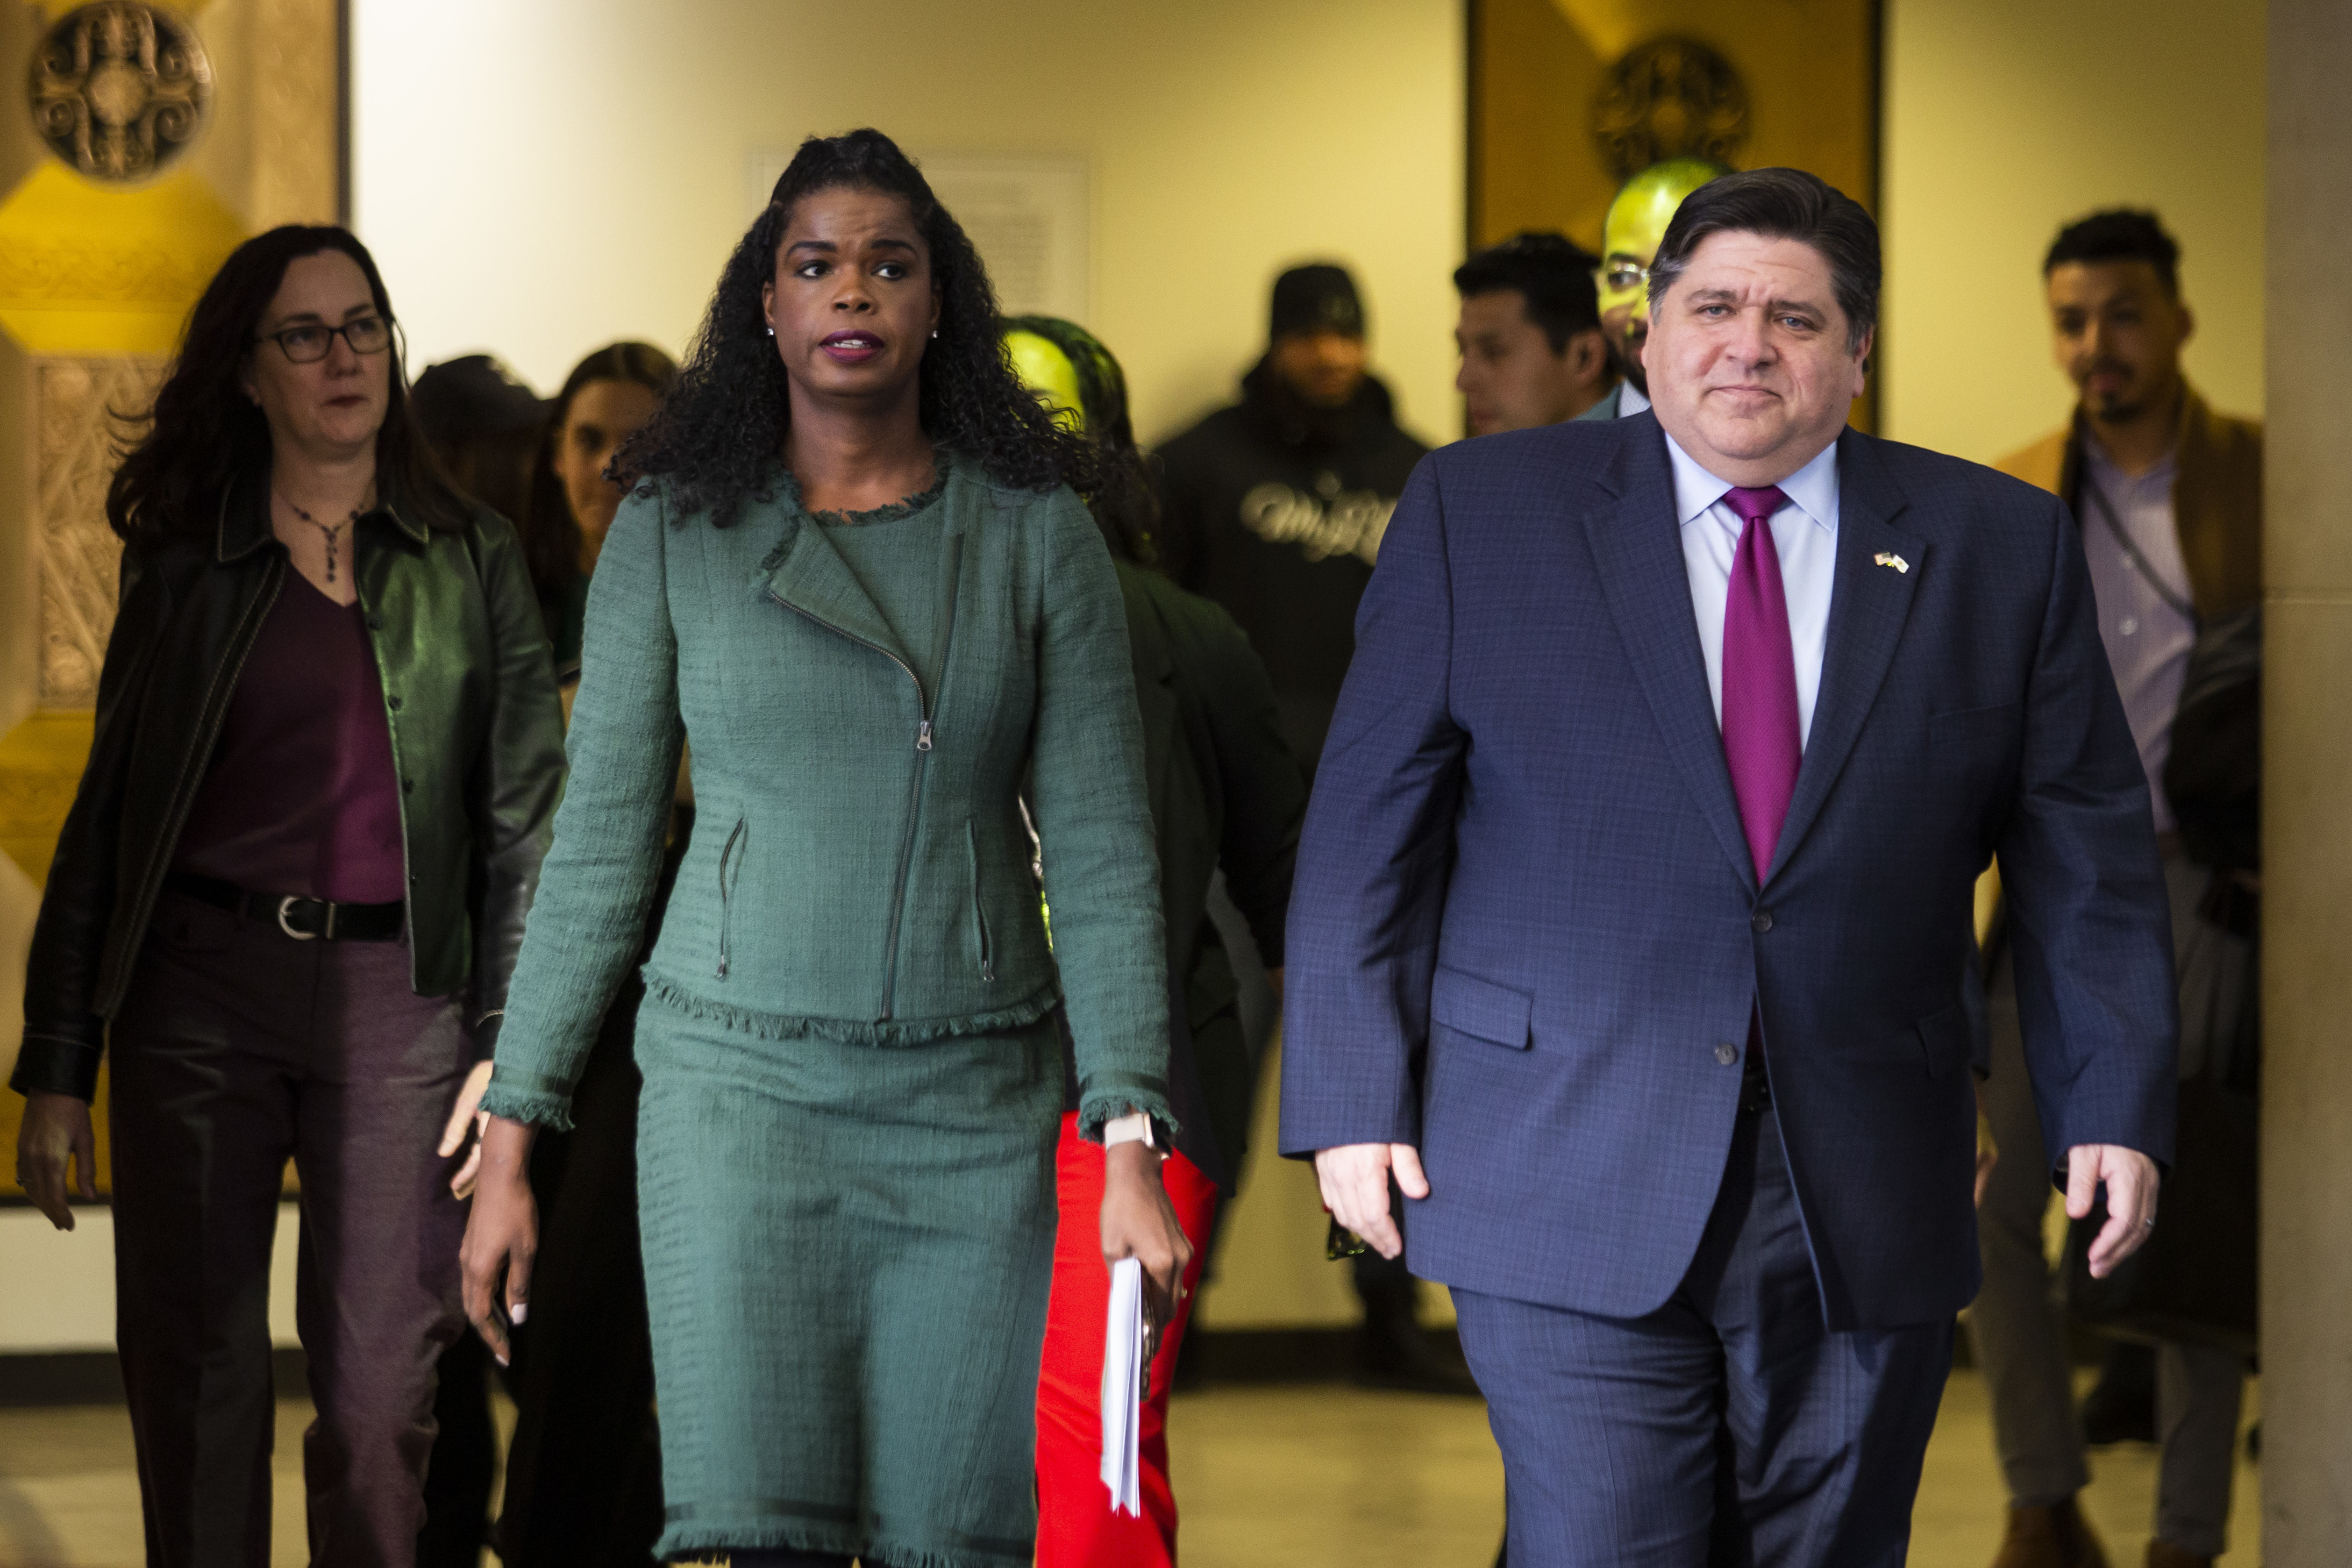 Cook County State's Attorney Kim Foxx and Gov. J.B. Pritzker walk toward a press conference at the Leighton Criminal Courthouse after Foxx filed motions to vacate more than 1,000 low-level cannabis convictions, Wednesday afternoon, Dec. 11, 2019.